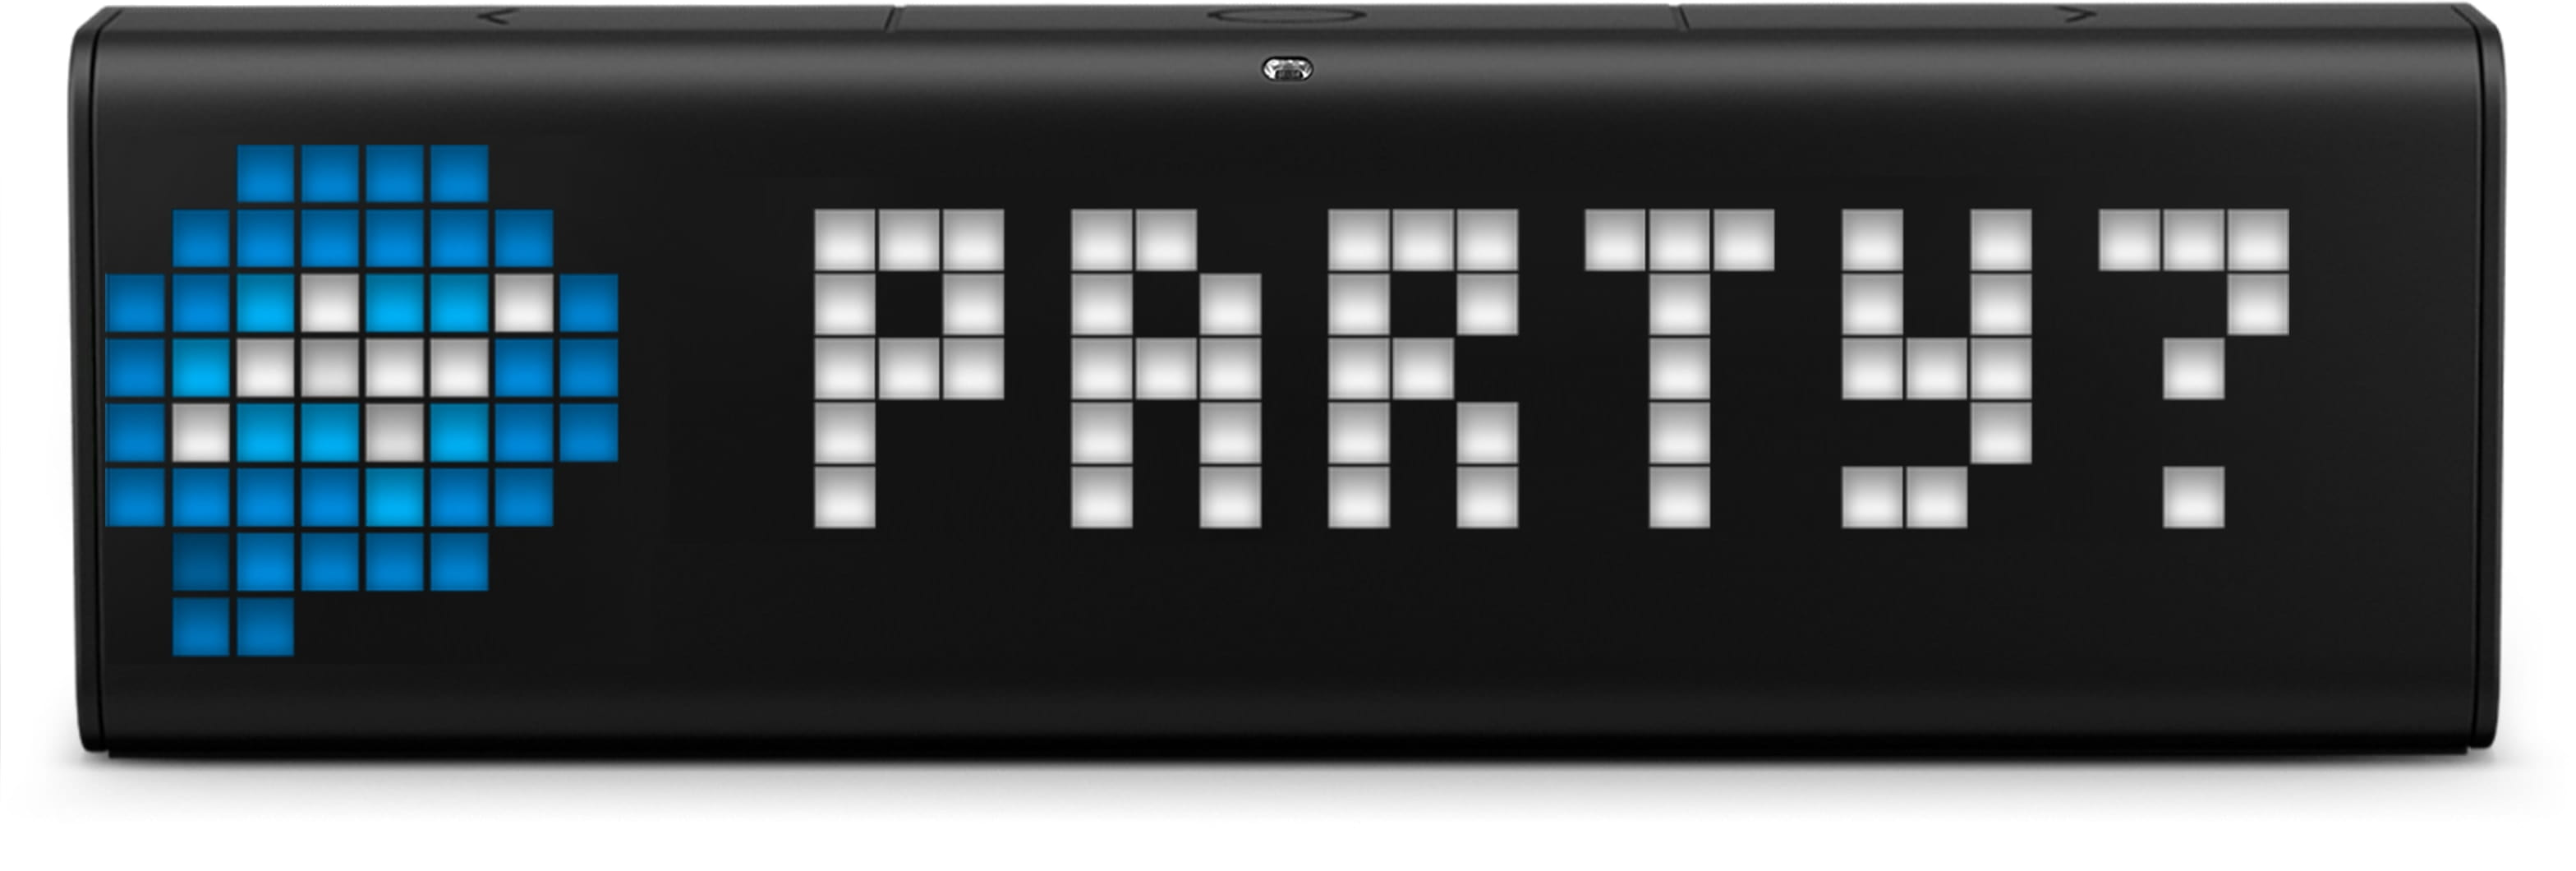 "LaMetric Time smart clock displays the incoming Facebook message ""party?"""